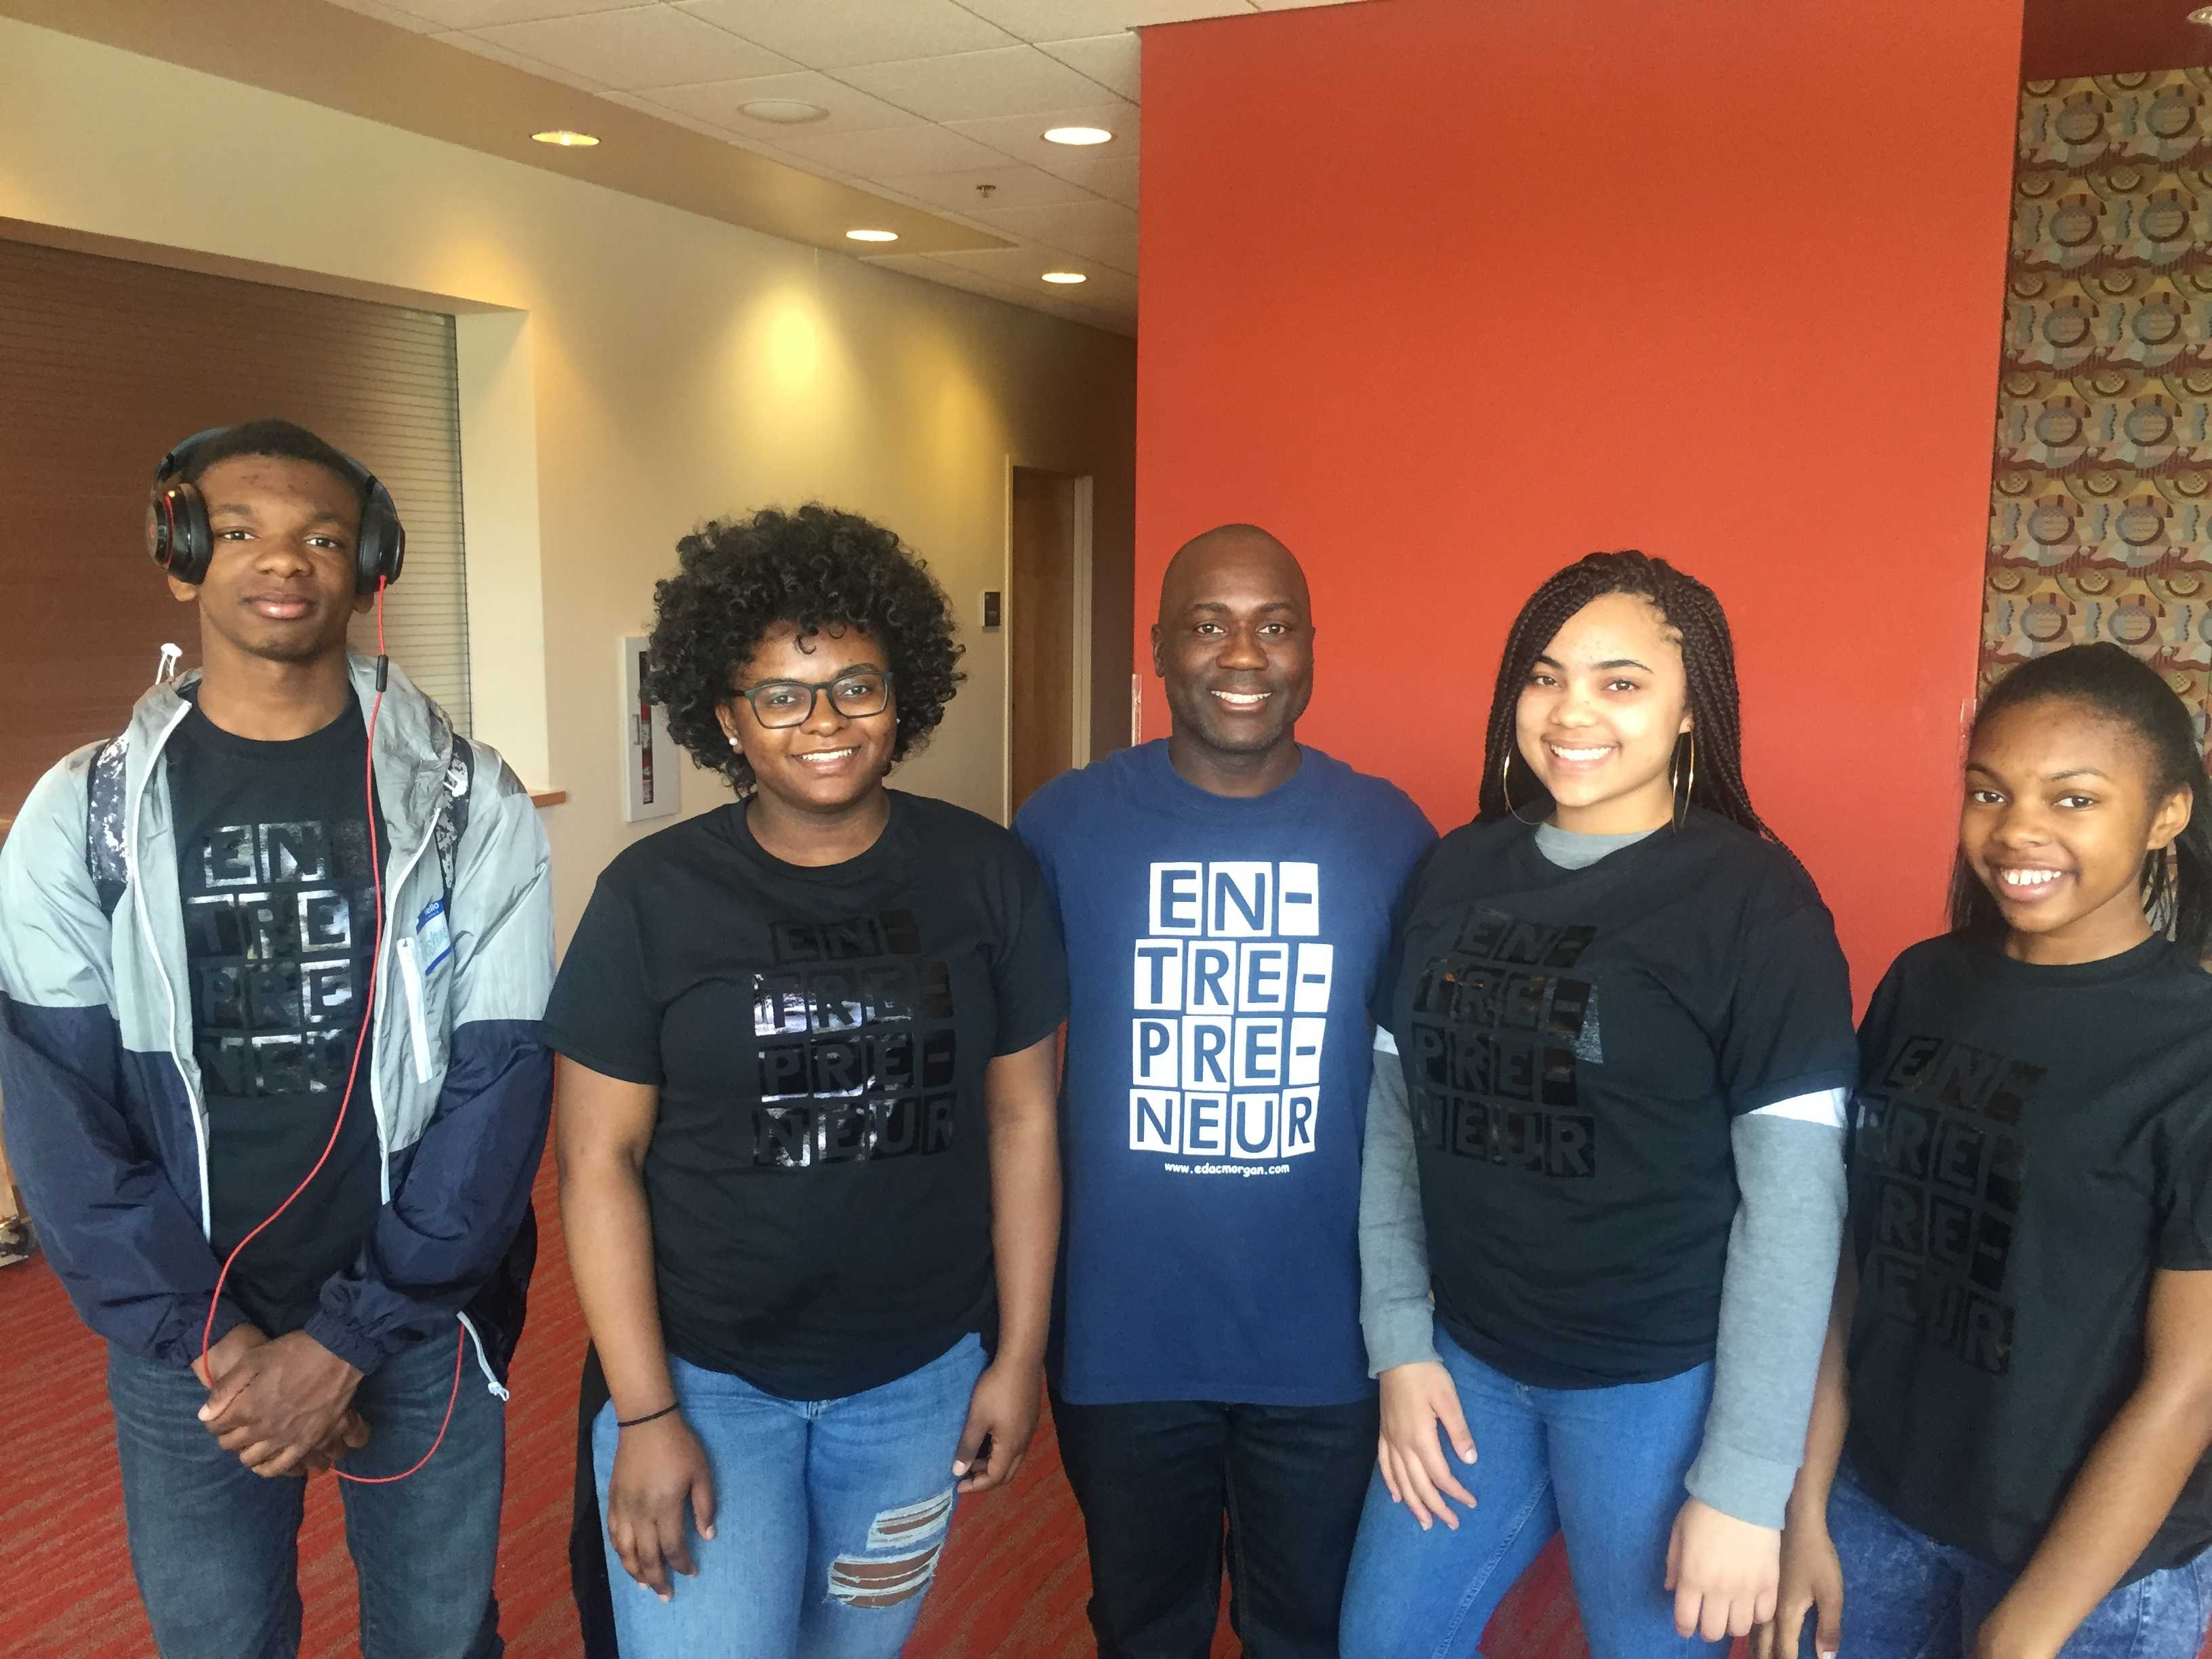 From left to right: Joshua Vaughan, 16, Jada Gillison, 14, Omar Muhammad, Director of EDAC, Kennedi Vaughan, 15, Jessica Vaughan, 14. Photo by Ahjahnae LaQuer